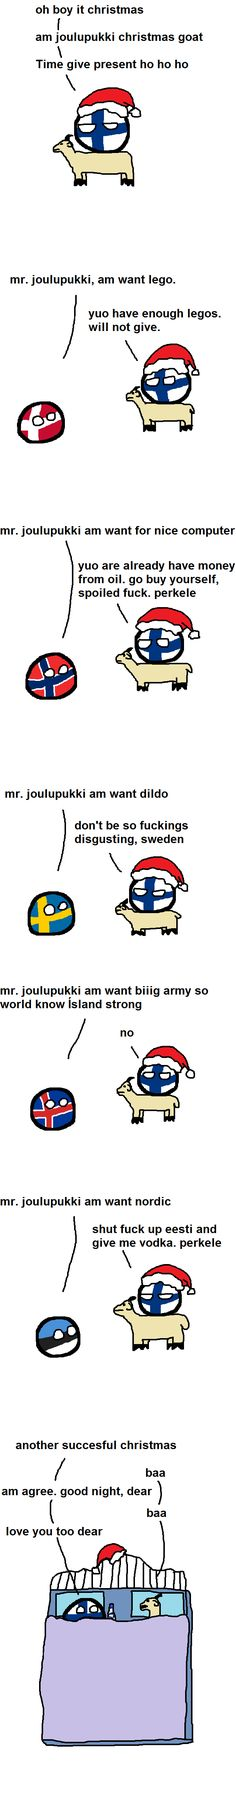 Christmas is Finnished (Finland, Denmark, Norway, Sweden, Iceland, Estonia) by Eesti Stronk #polandball #countryball